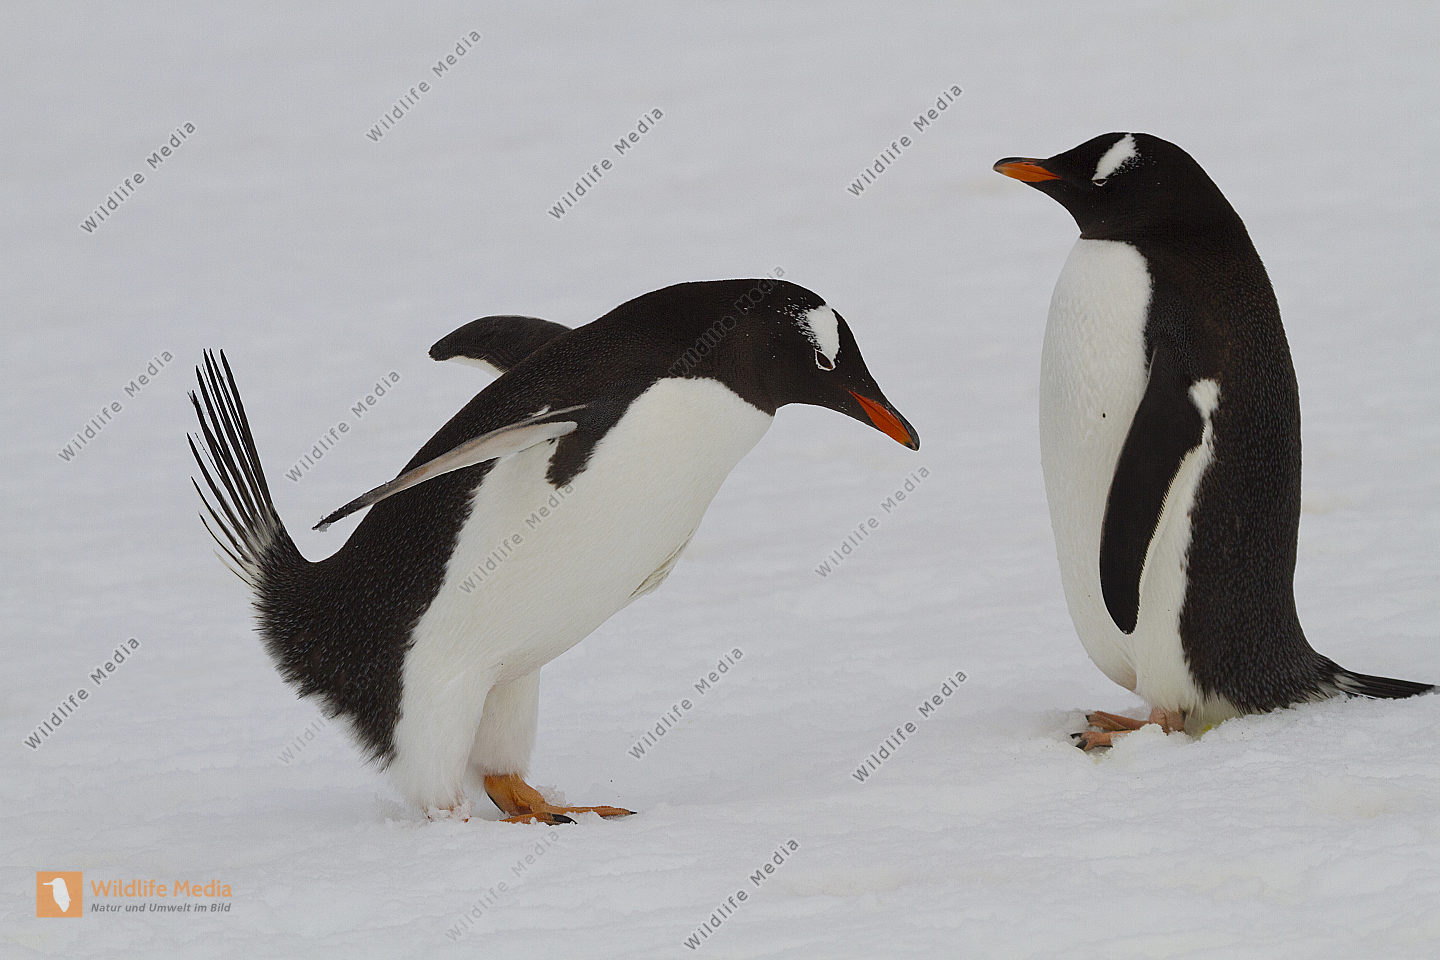 Eselspinguin-Paarung